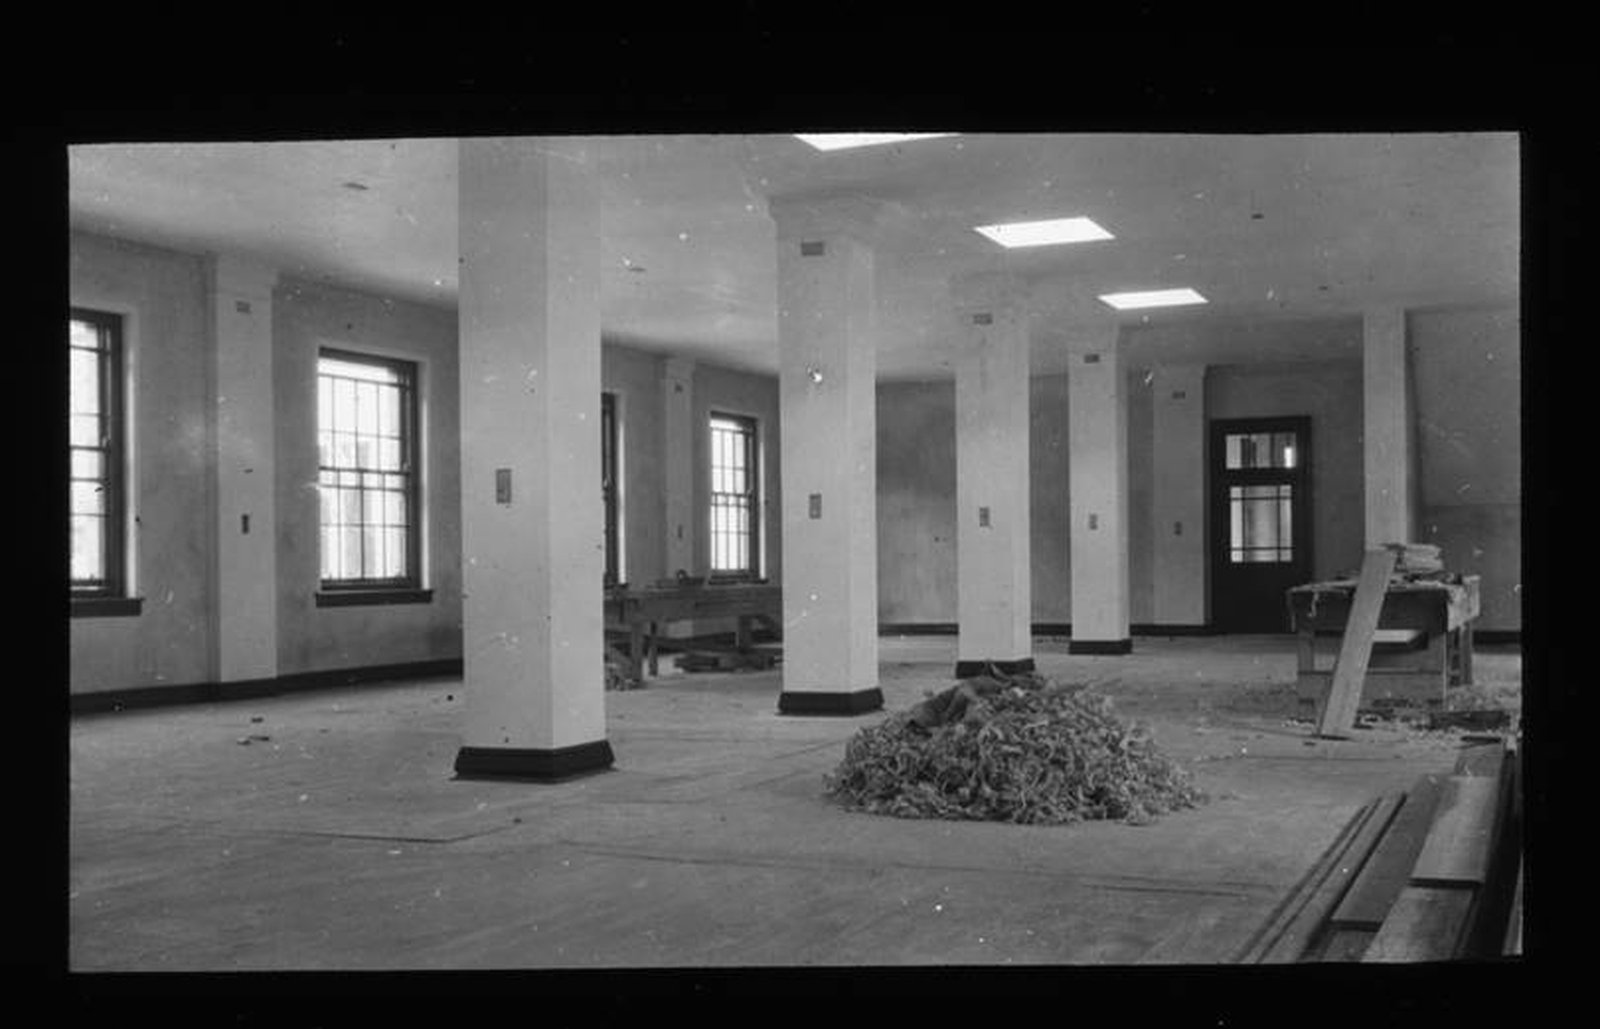 Image - From the ashes 2: The new interior. Credit @Arch_Archive/ Irish Architectural Archive.